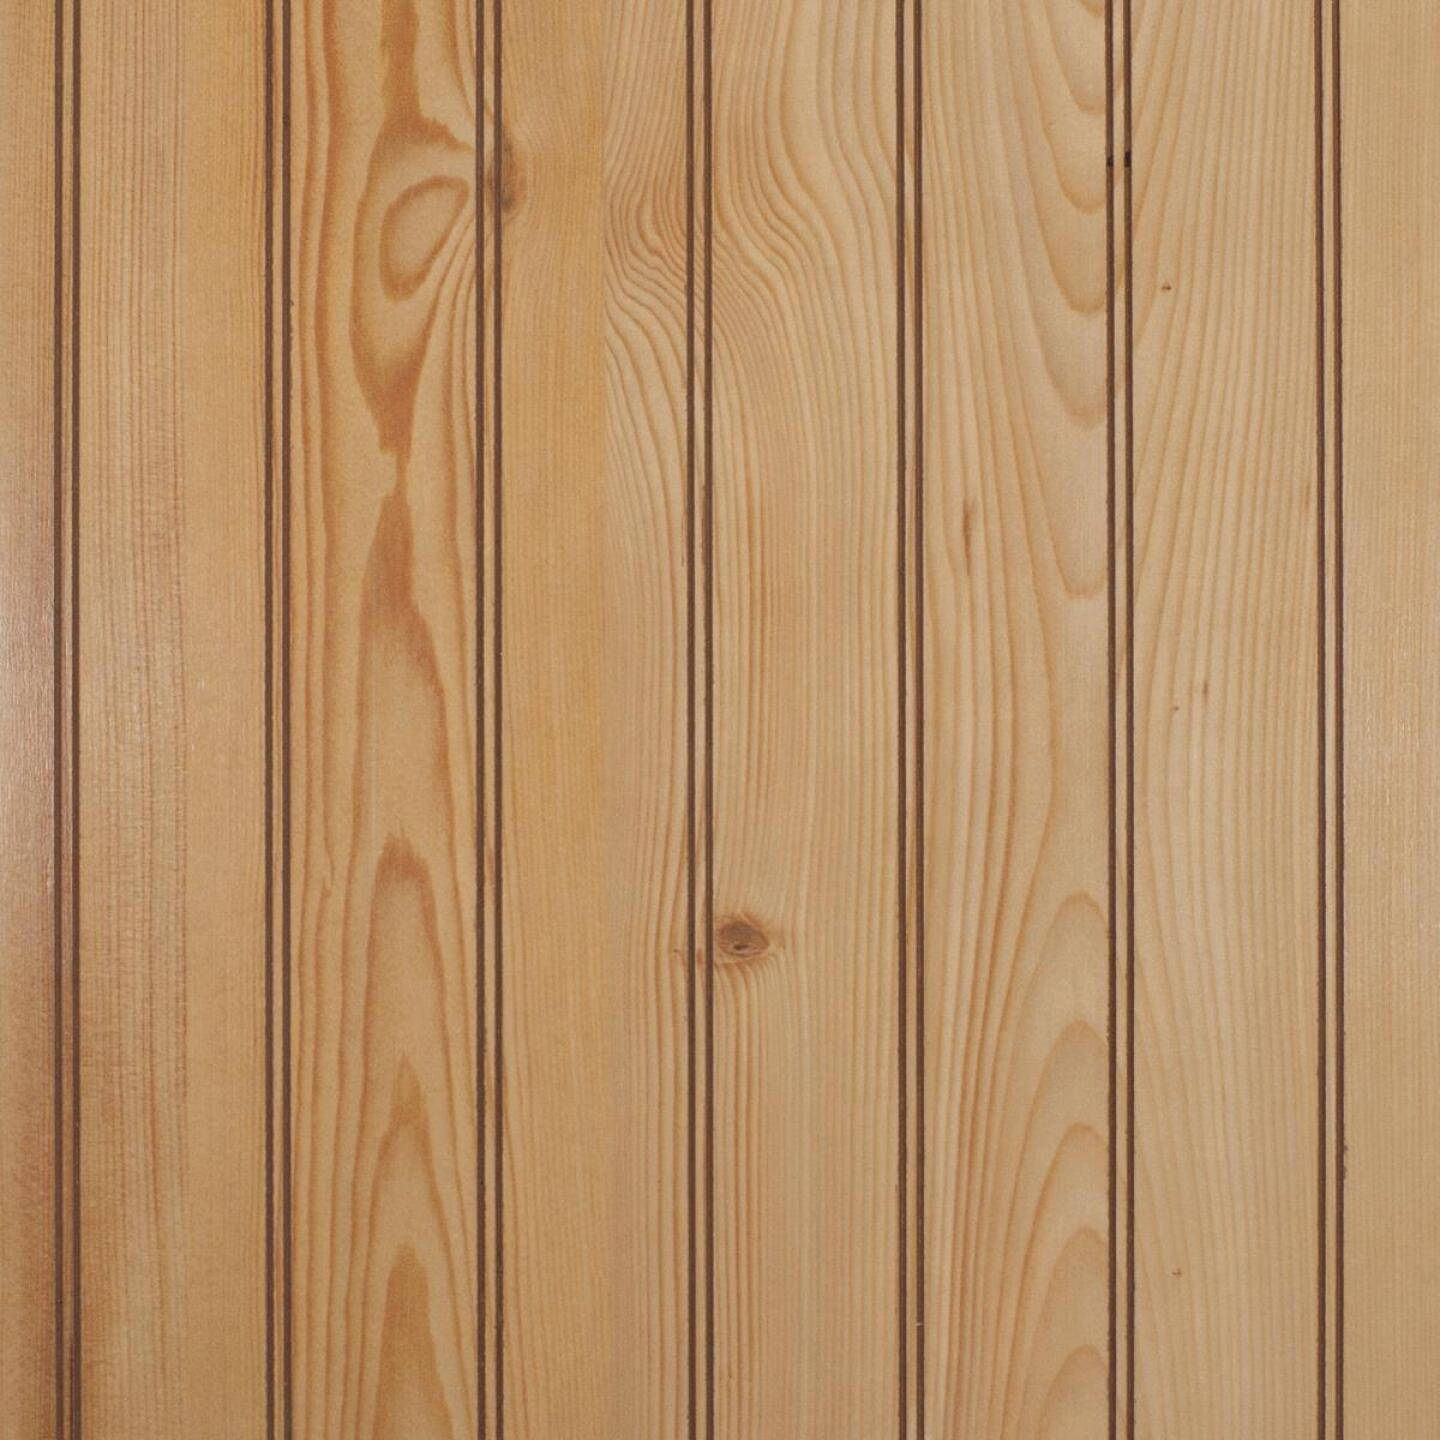 Global Product Sourcing 4 Ft. x 8 Ft. x 1/8 In. Knotty Pine Beaded Profile Wall Paneling Image 1